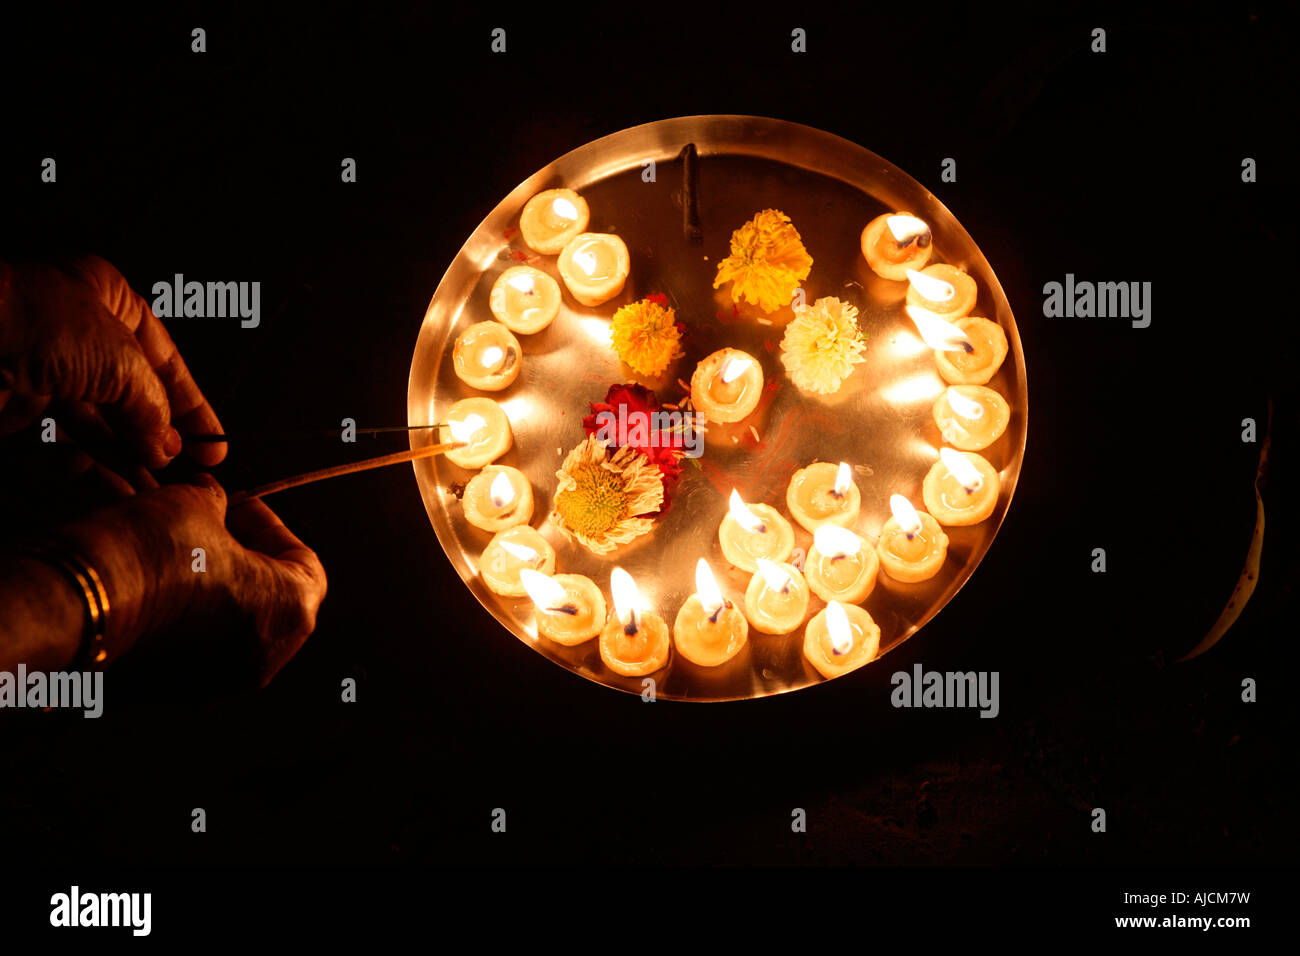 A devotee lighting earthen lamps for a religious ceremony - Stock Image